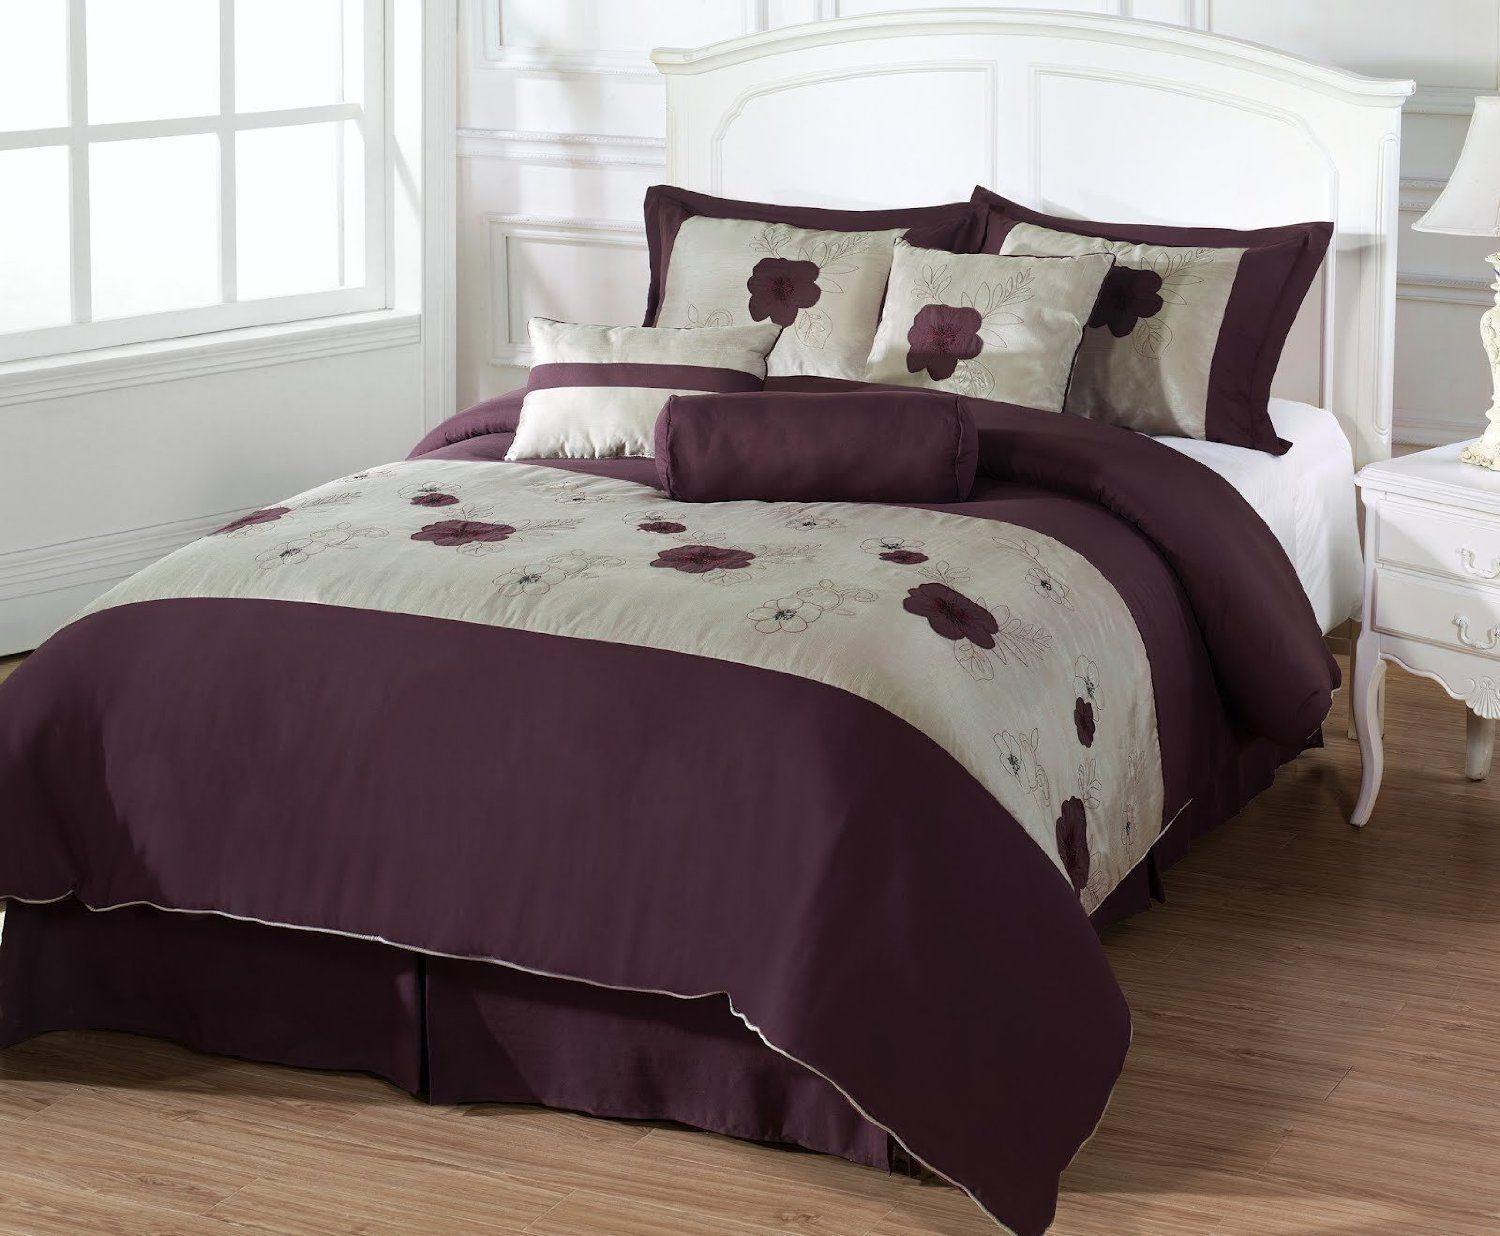 target sale king bedroom rack comforter amazon cheap california and s macys on bedspreads sets size full